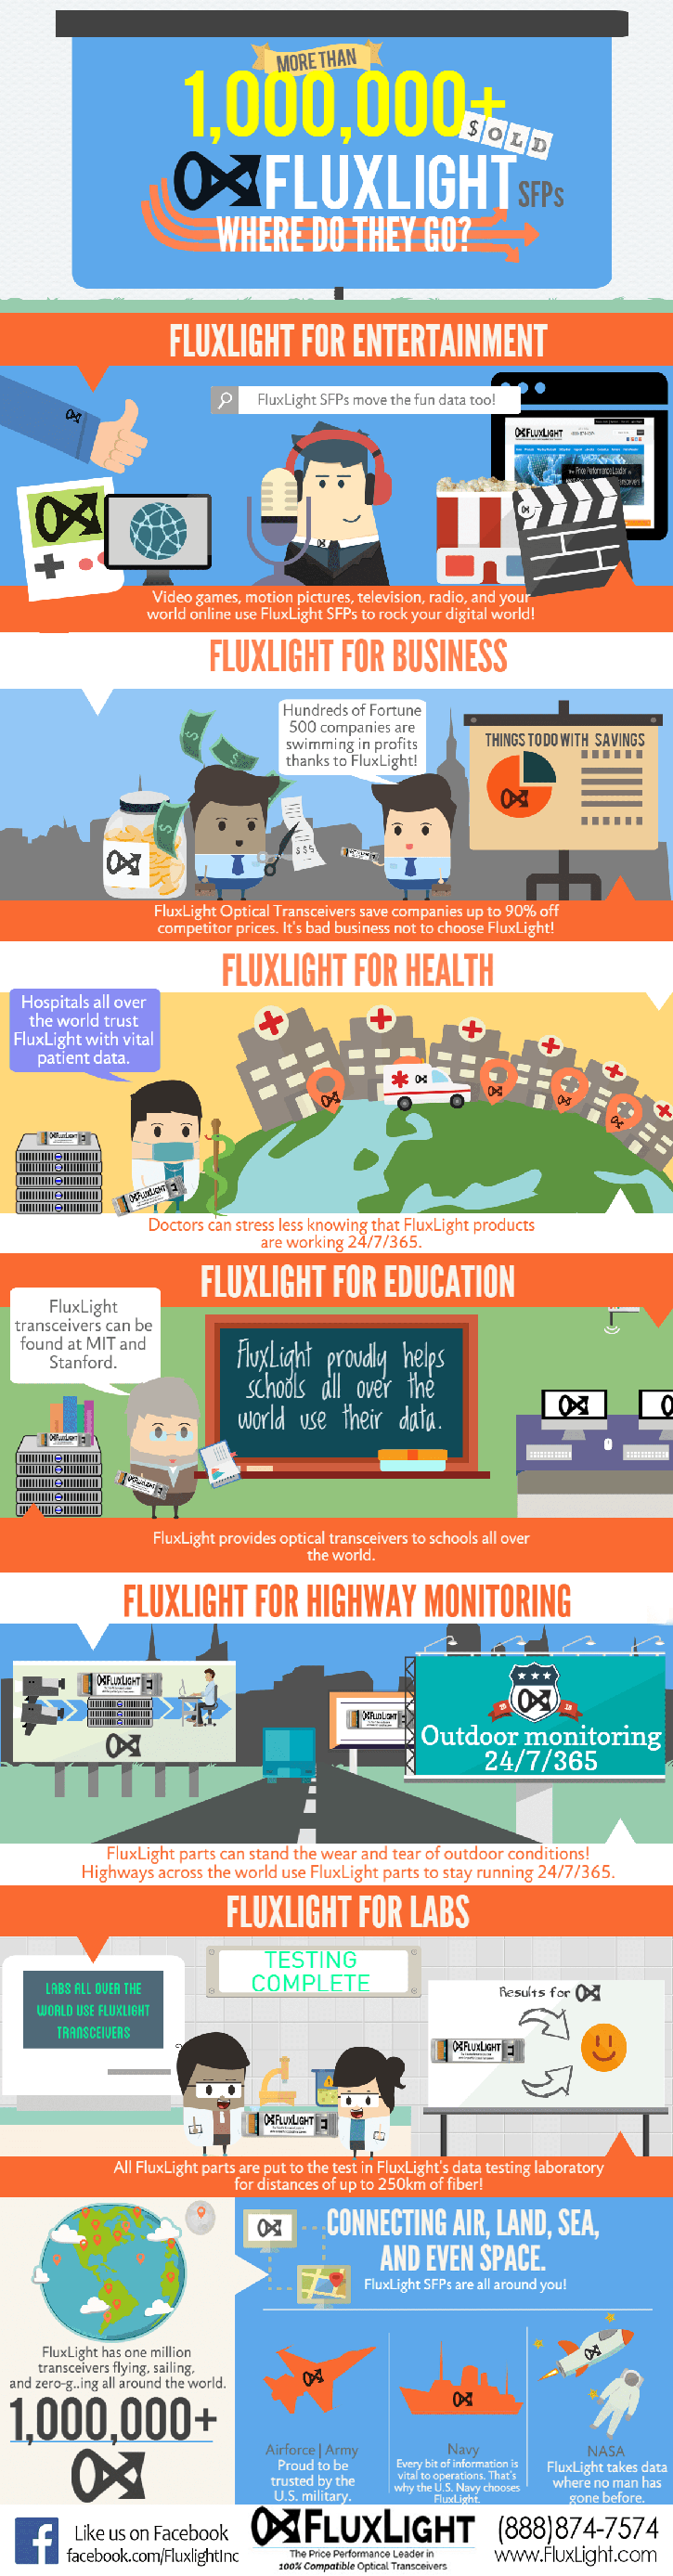 fluxlight-inforgraphic-where-do-they-go-final1.png